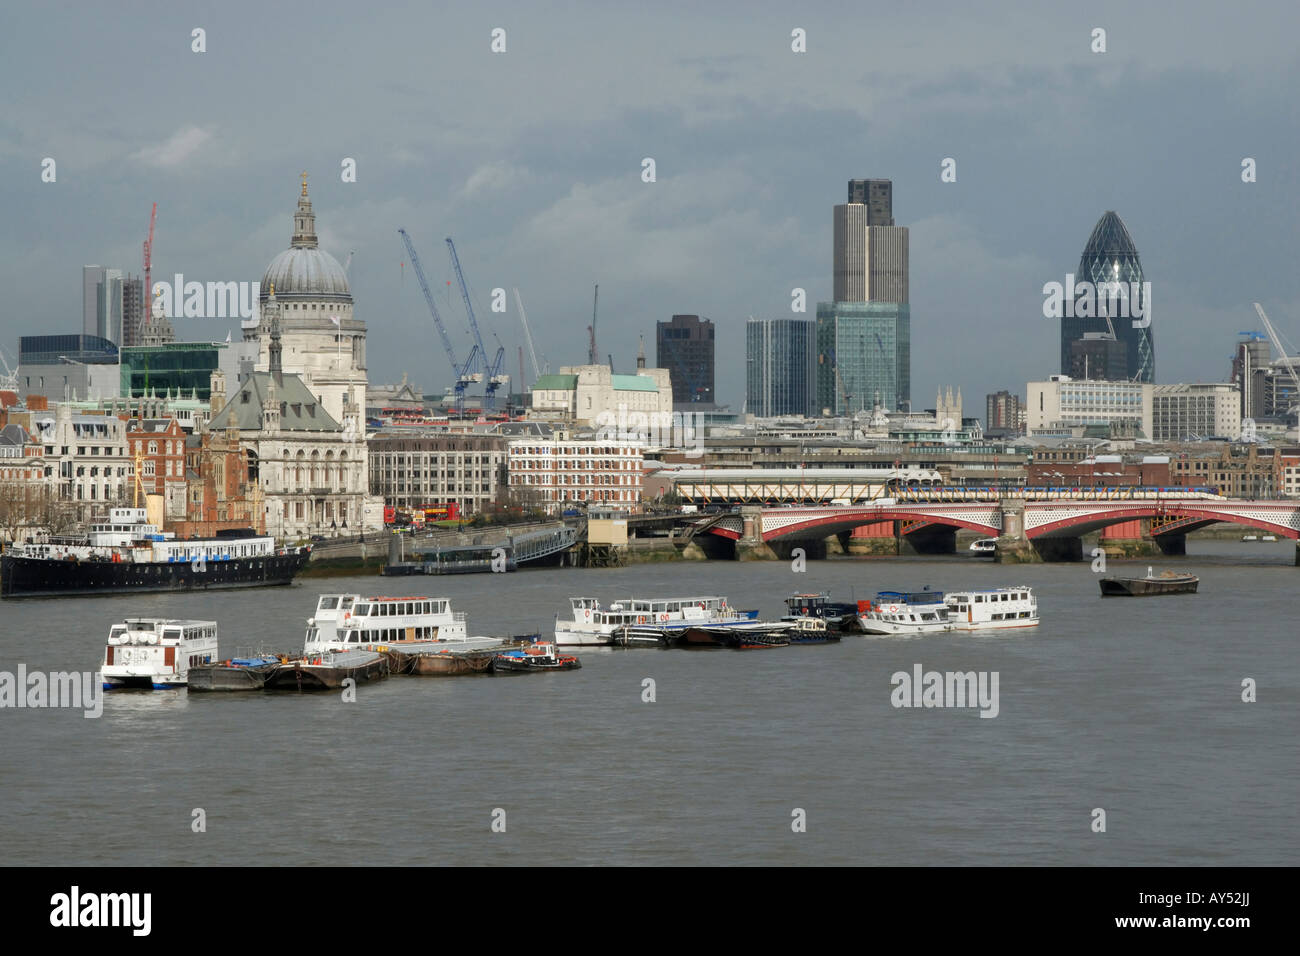 View of City of London (Square Mile) across River Thames, with moored tourist boats in foreground, London, England Stock Photo